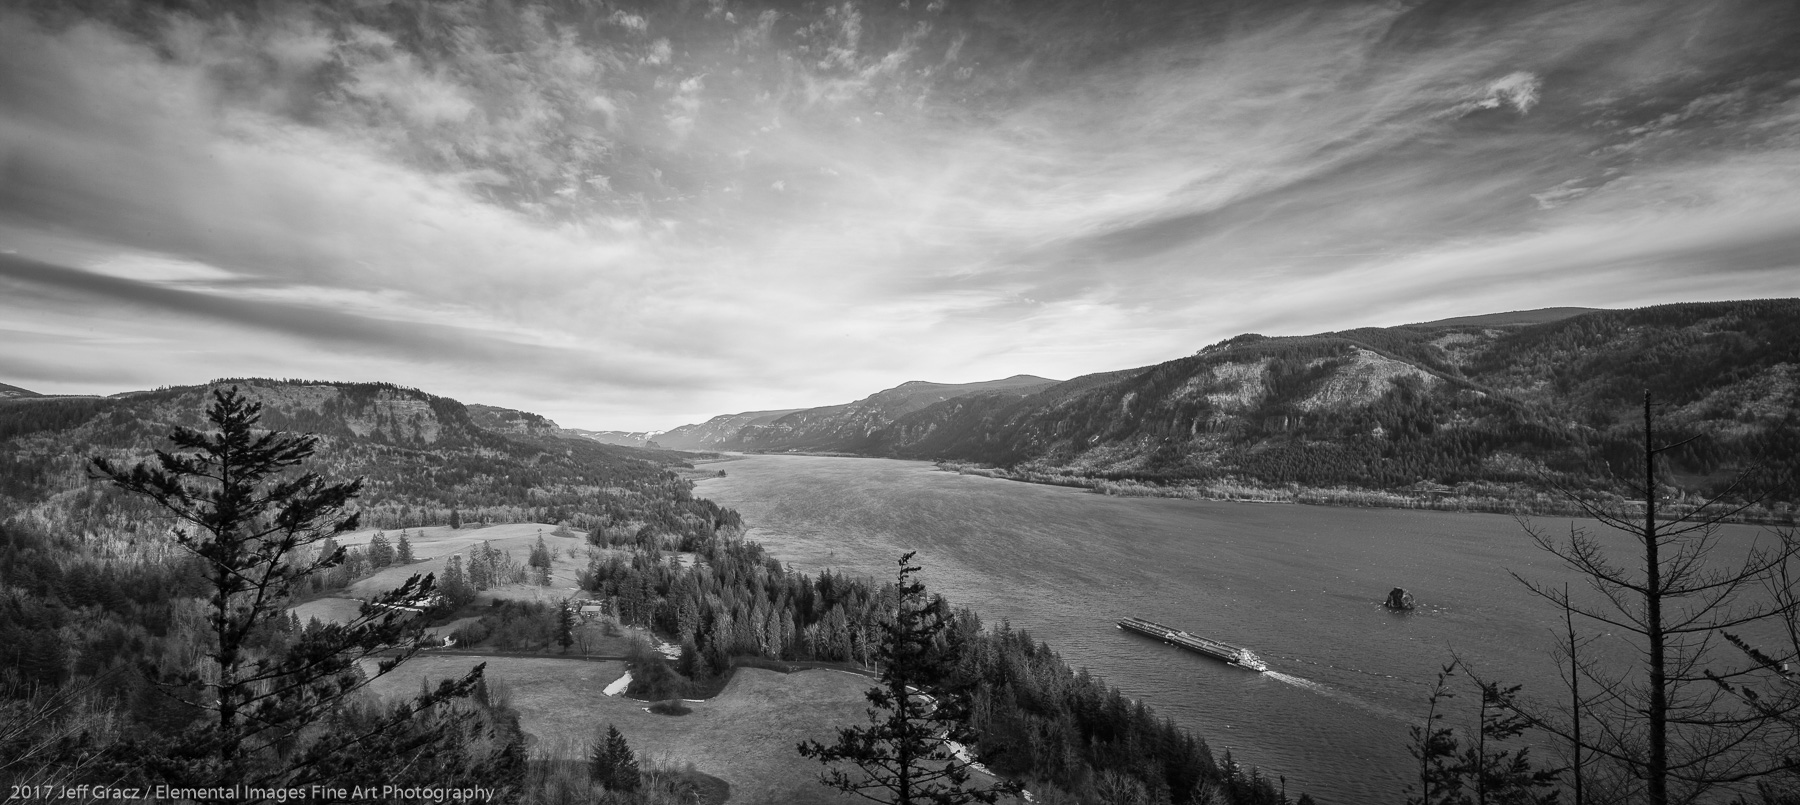 The Columbia River Gorge | Columbia River Gorge National Scenic Area | WA | USA - © 2017 Jeff Gracz / Elemental Images Fine Art Photography - All Rights Reserved Worldwide